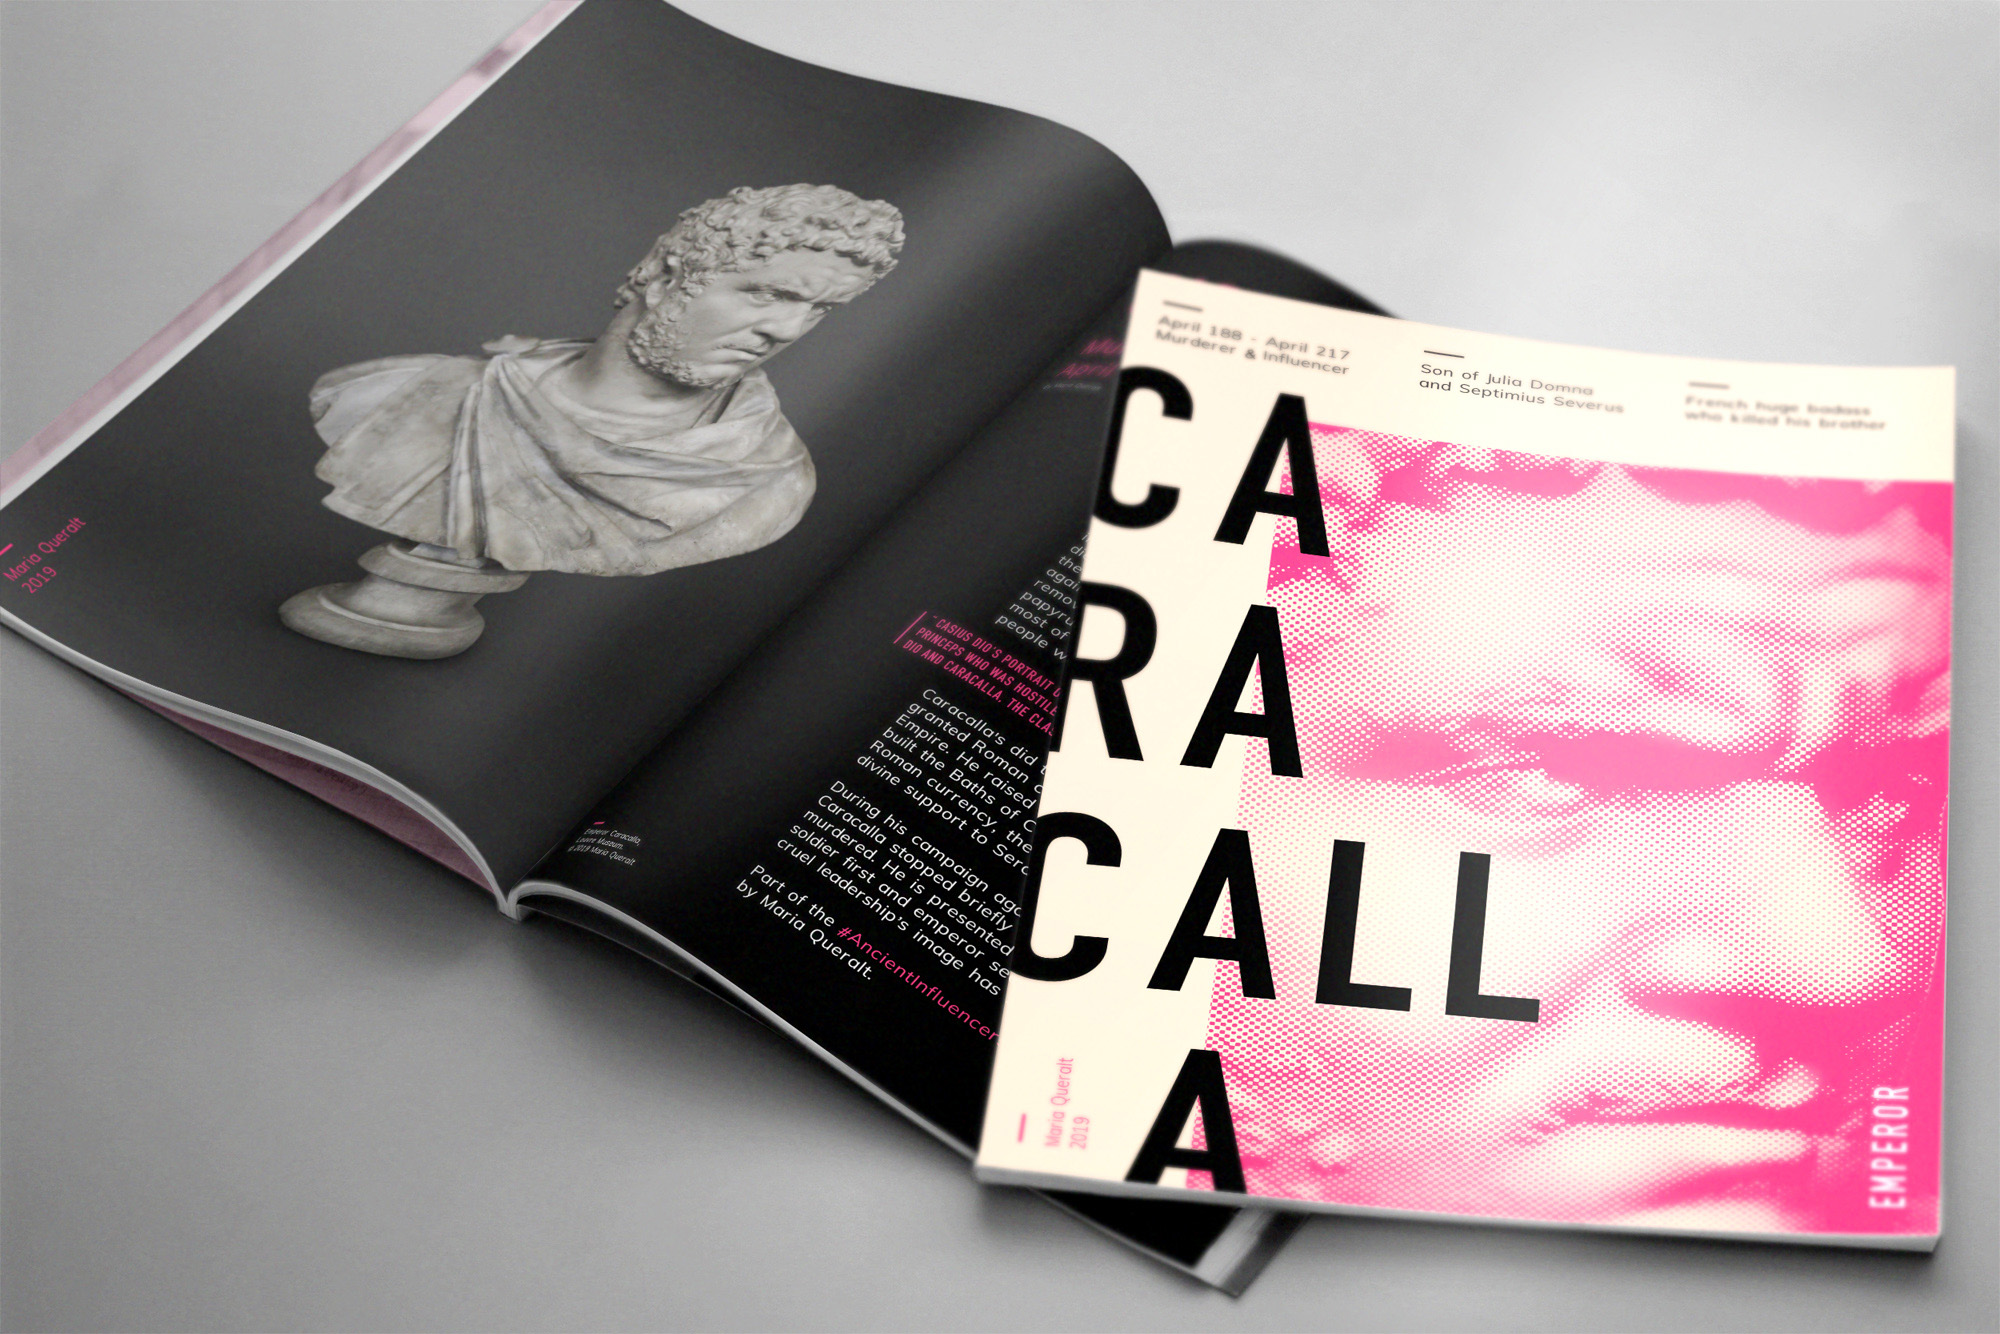 Magazine of the Sculpture of of Roman Emperor Caracalla, Part of the Ancient Influencers Photography series by Maria Queralt. Photography, design and art direction by Maria Queralt